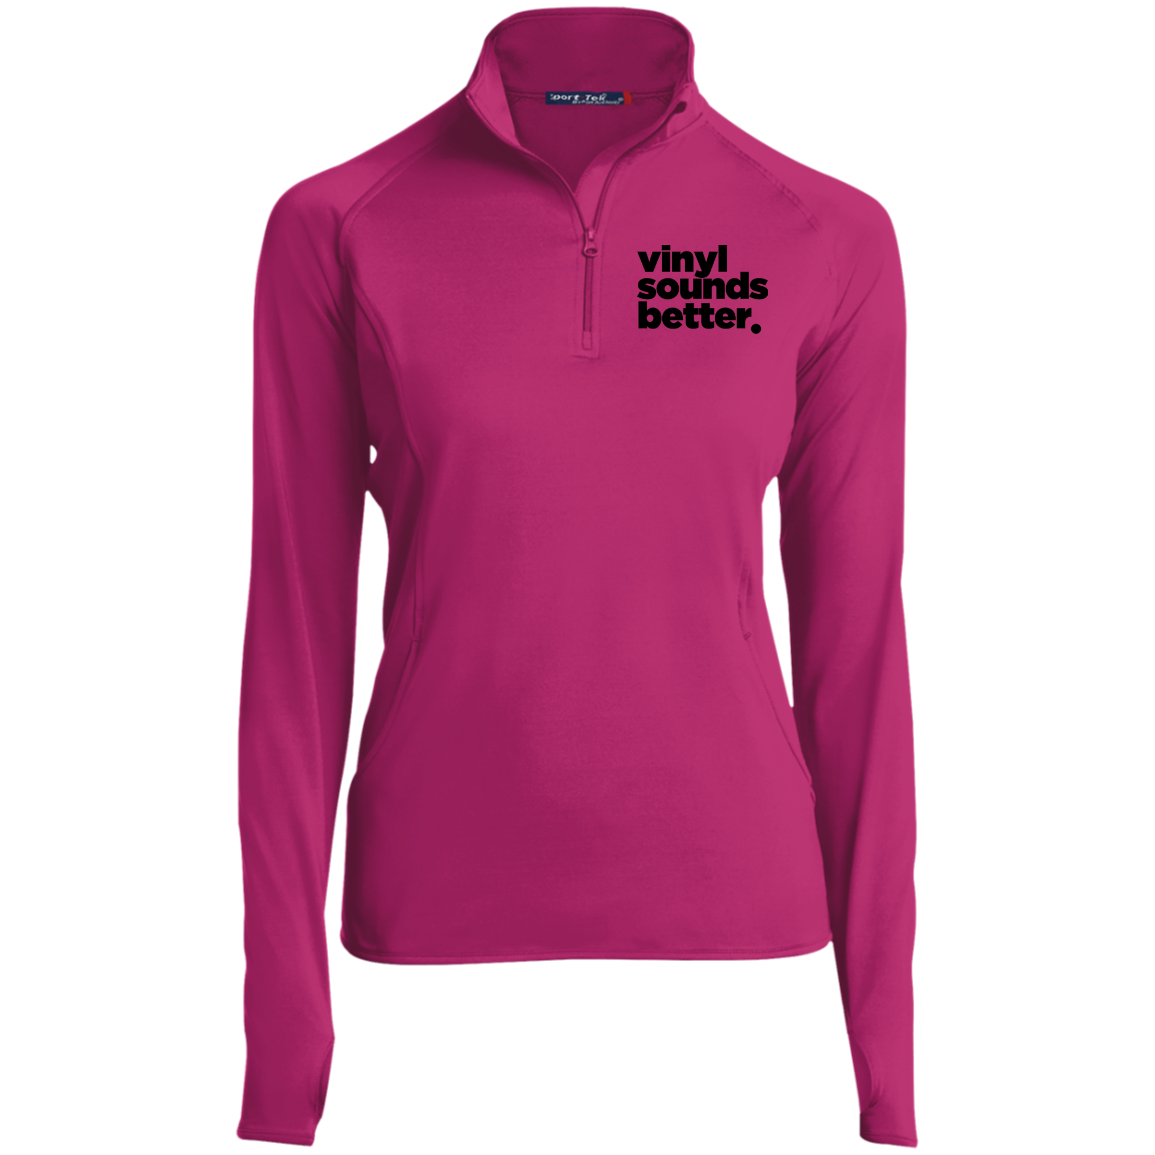 Vinyl Sounds Better Sport-Tek Women's 1/2 Zip Performance Pullover